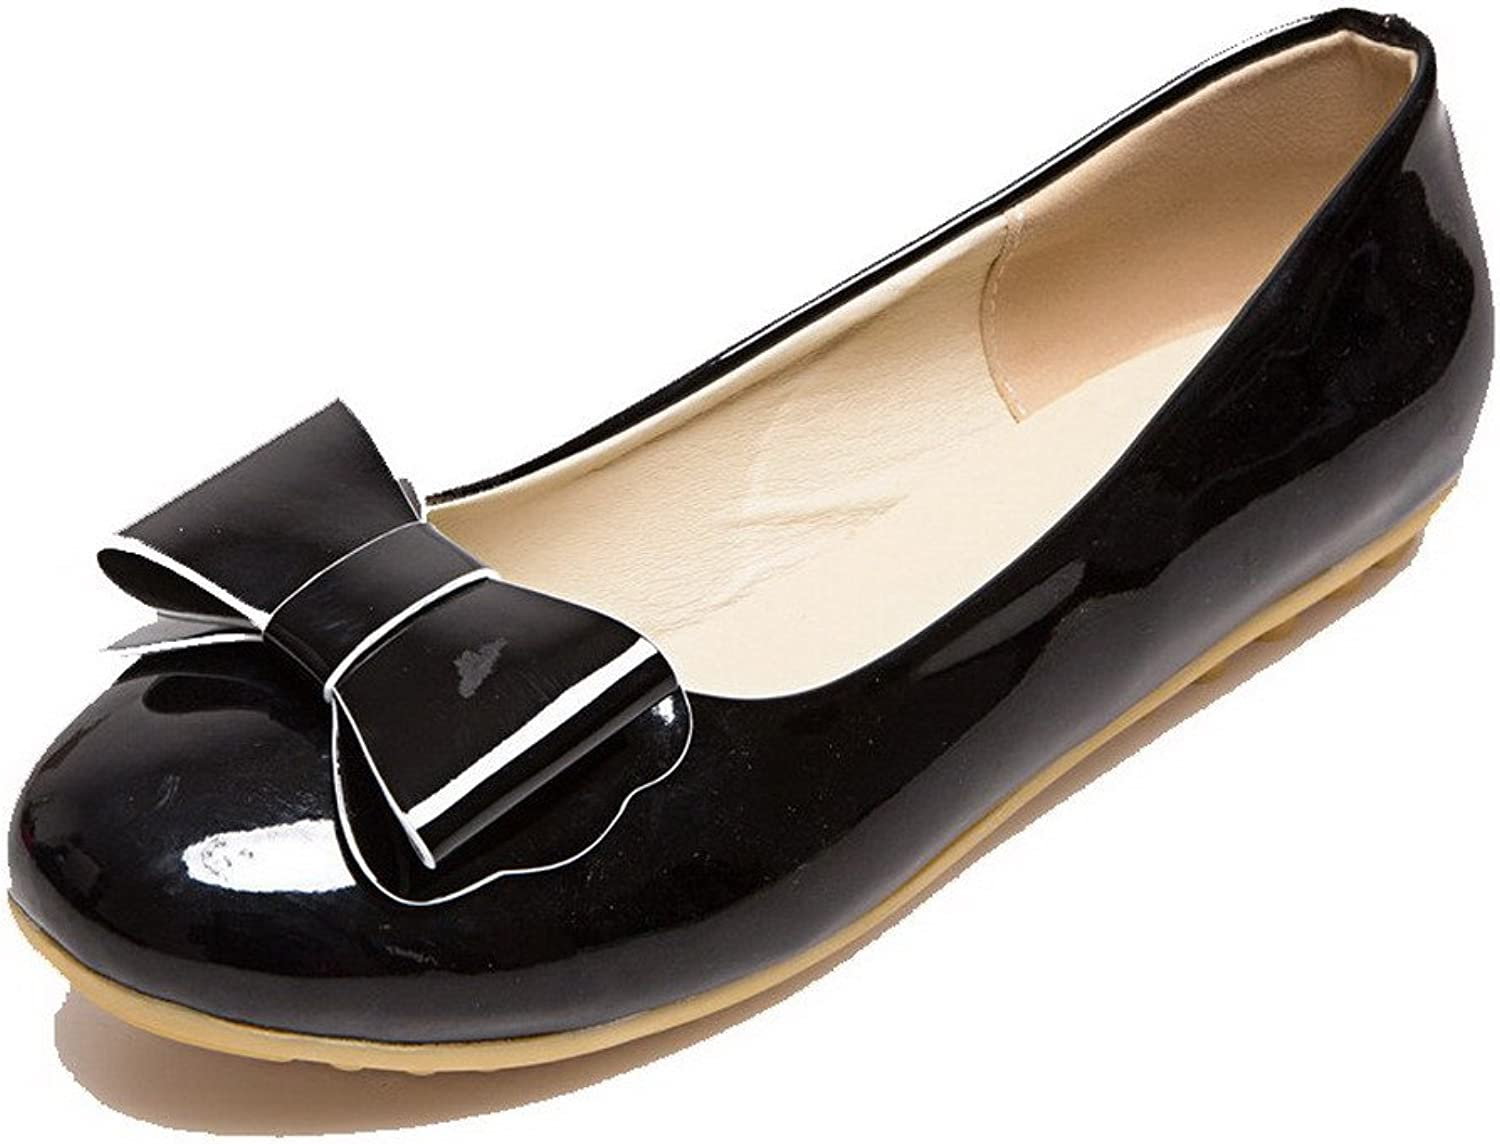 AllhqFashion Women's Solid Low-Heels Pull-On Round-Toe Pumps-shoes